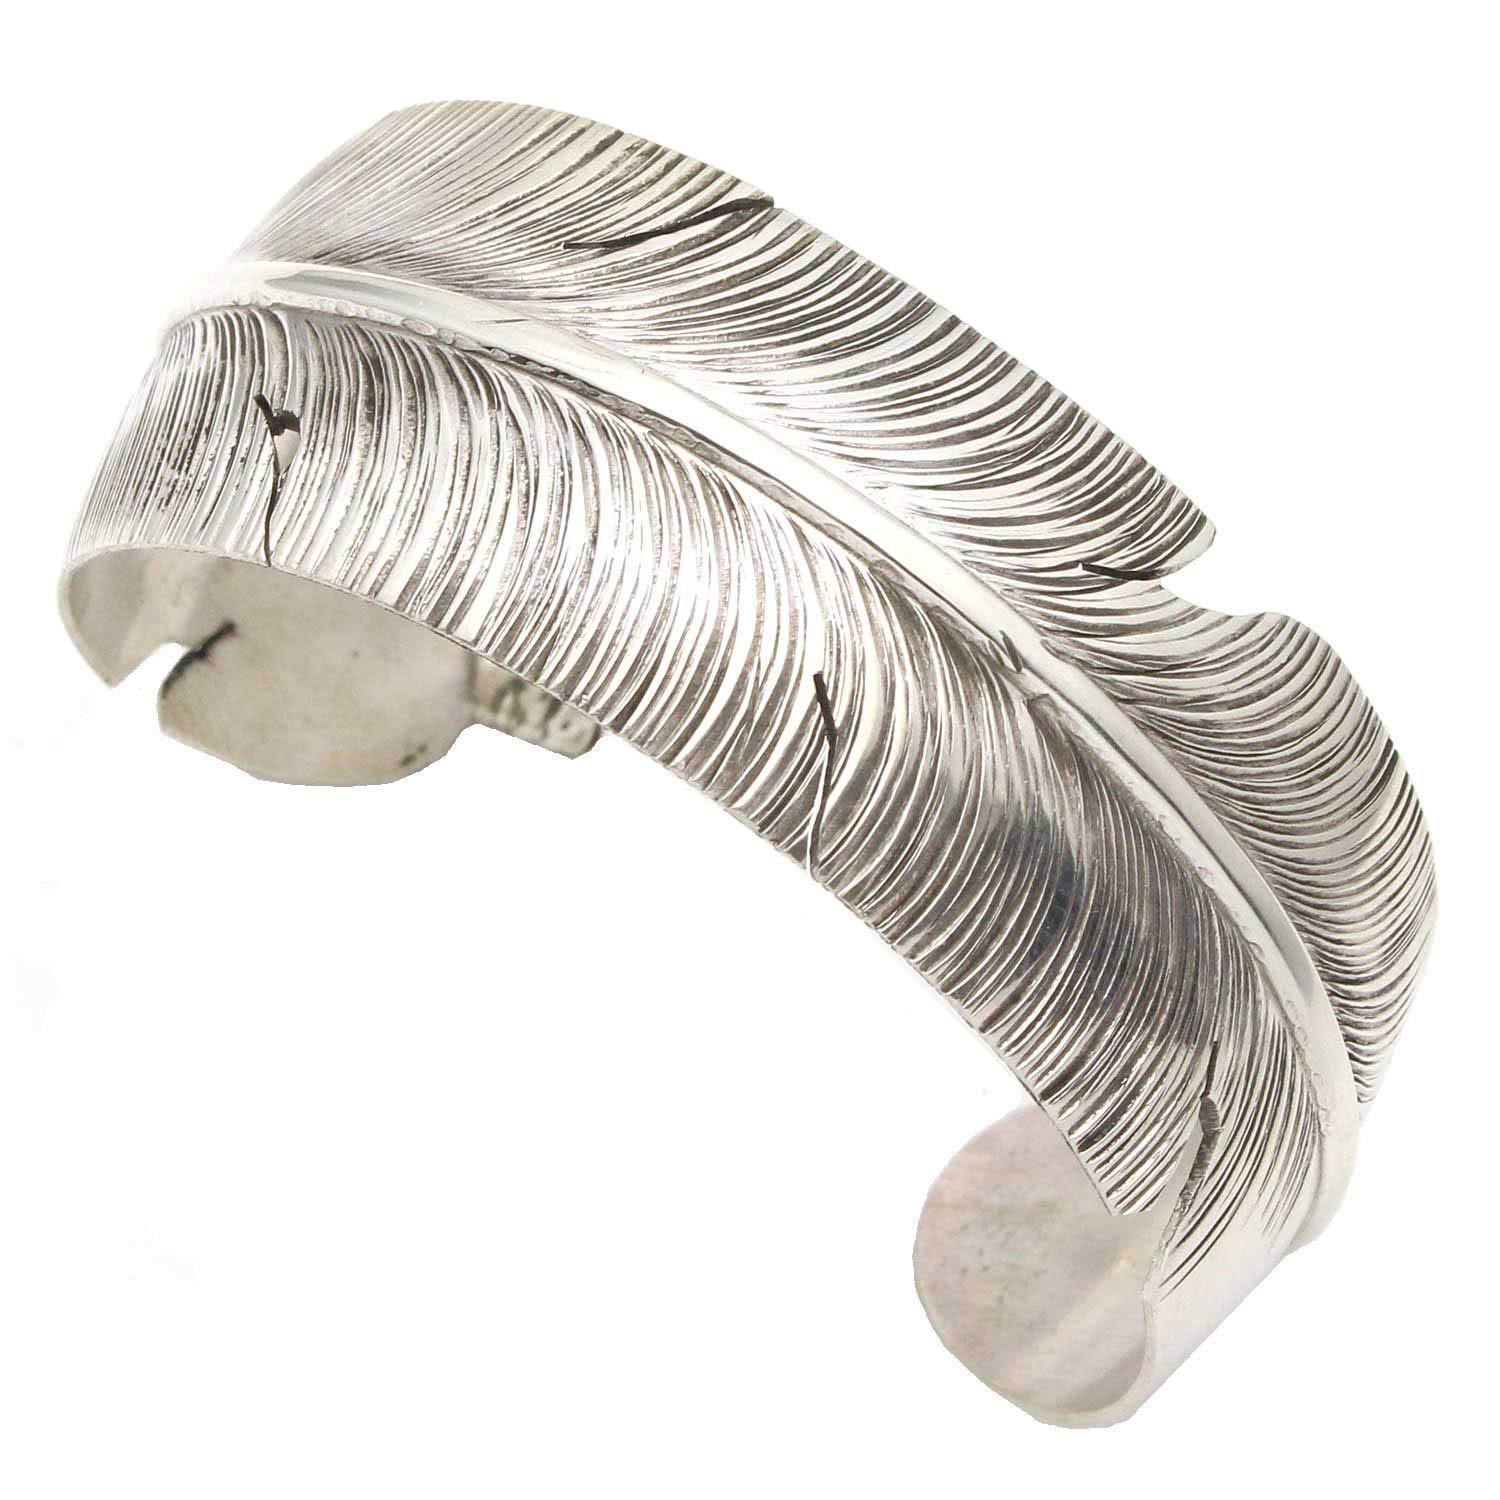 L7 Trading Navajo Sterling Silver Feather Bracelet by Ben Begay | 5 1/2'' tip to tip (Fits a Wrist of up to 6 7/8'' in Circumference)